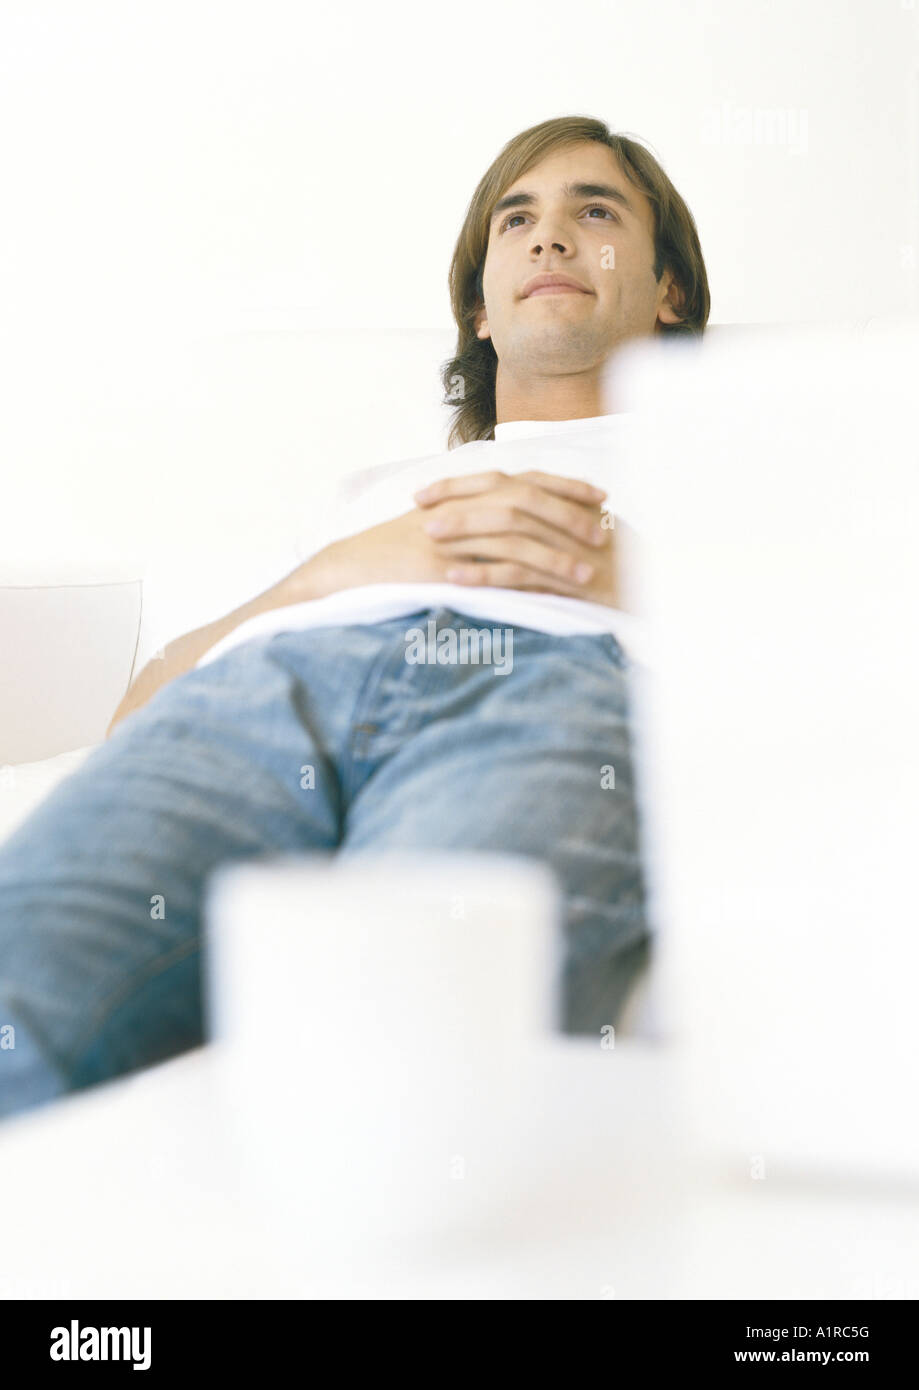 Man lying down, looking up - Stock Image